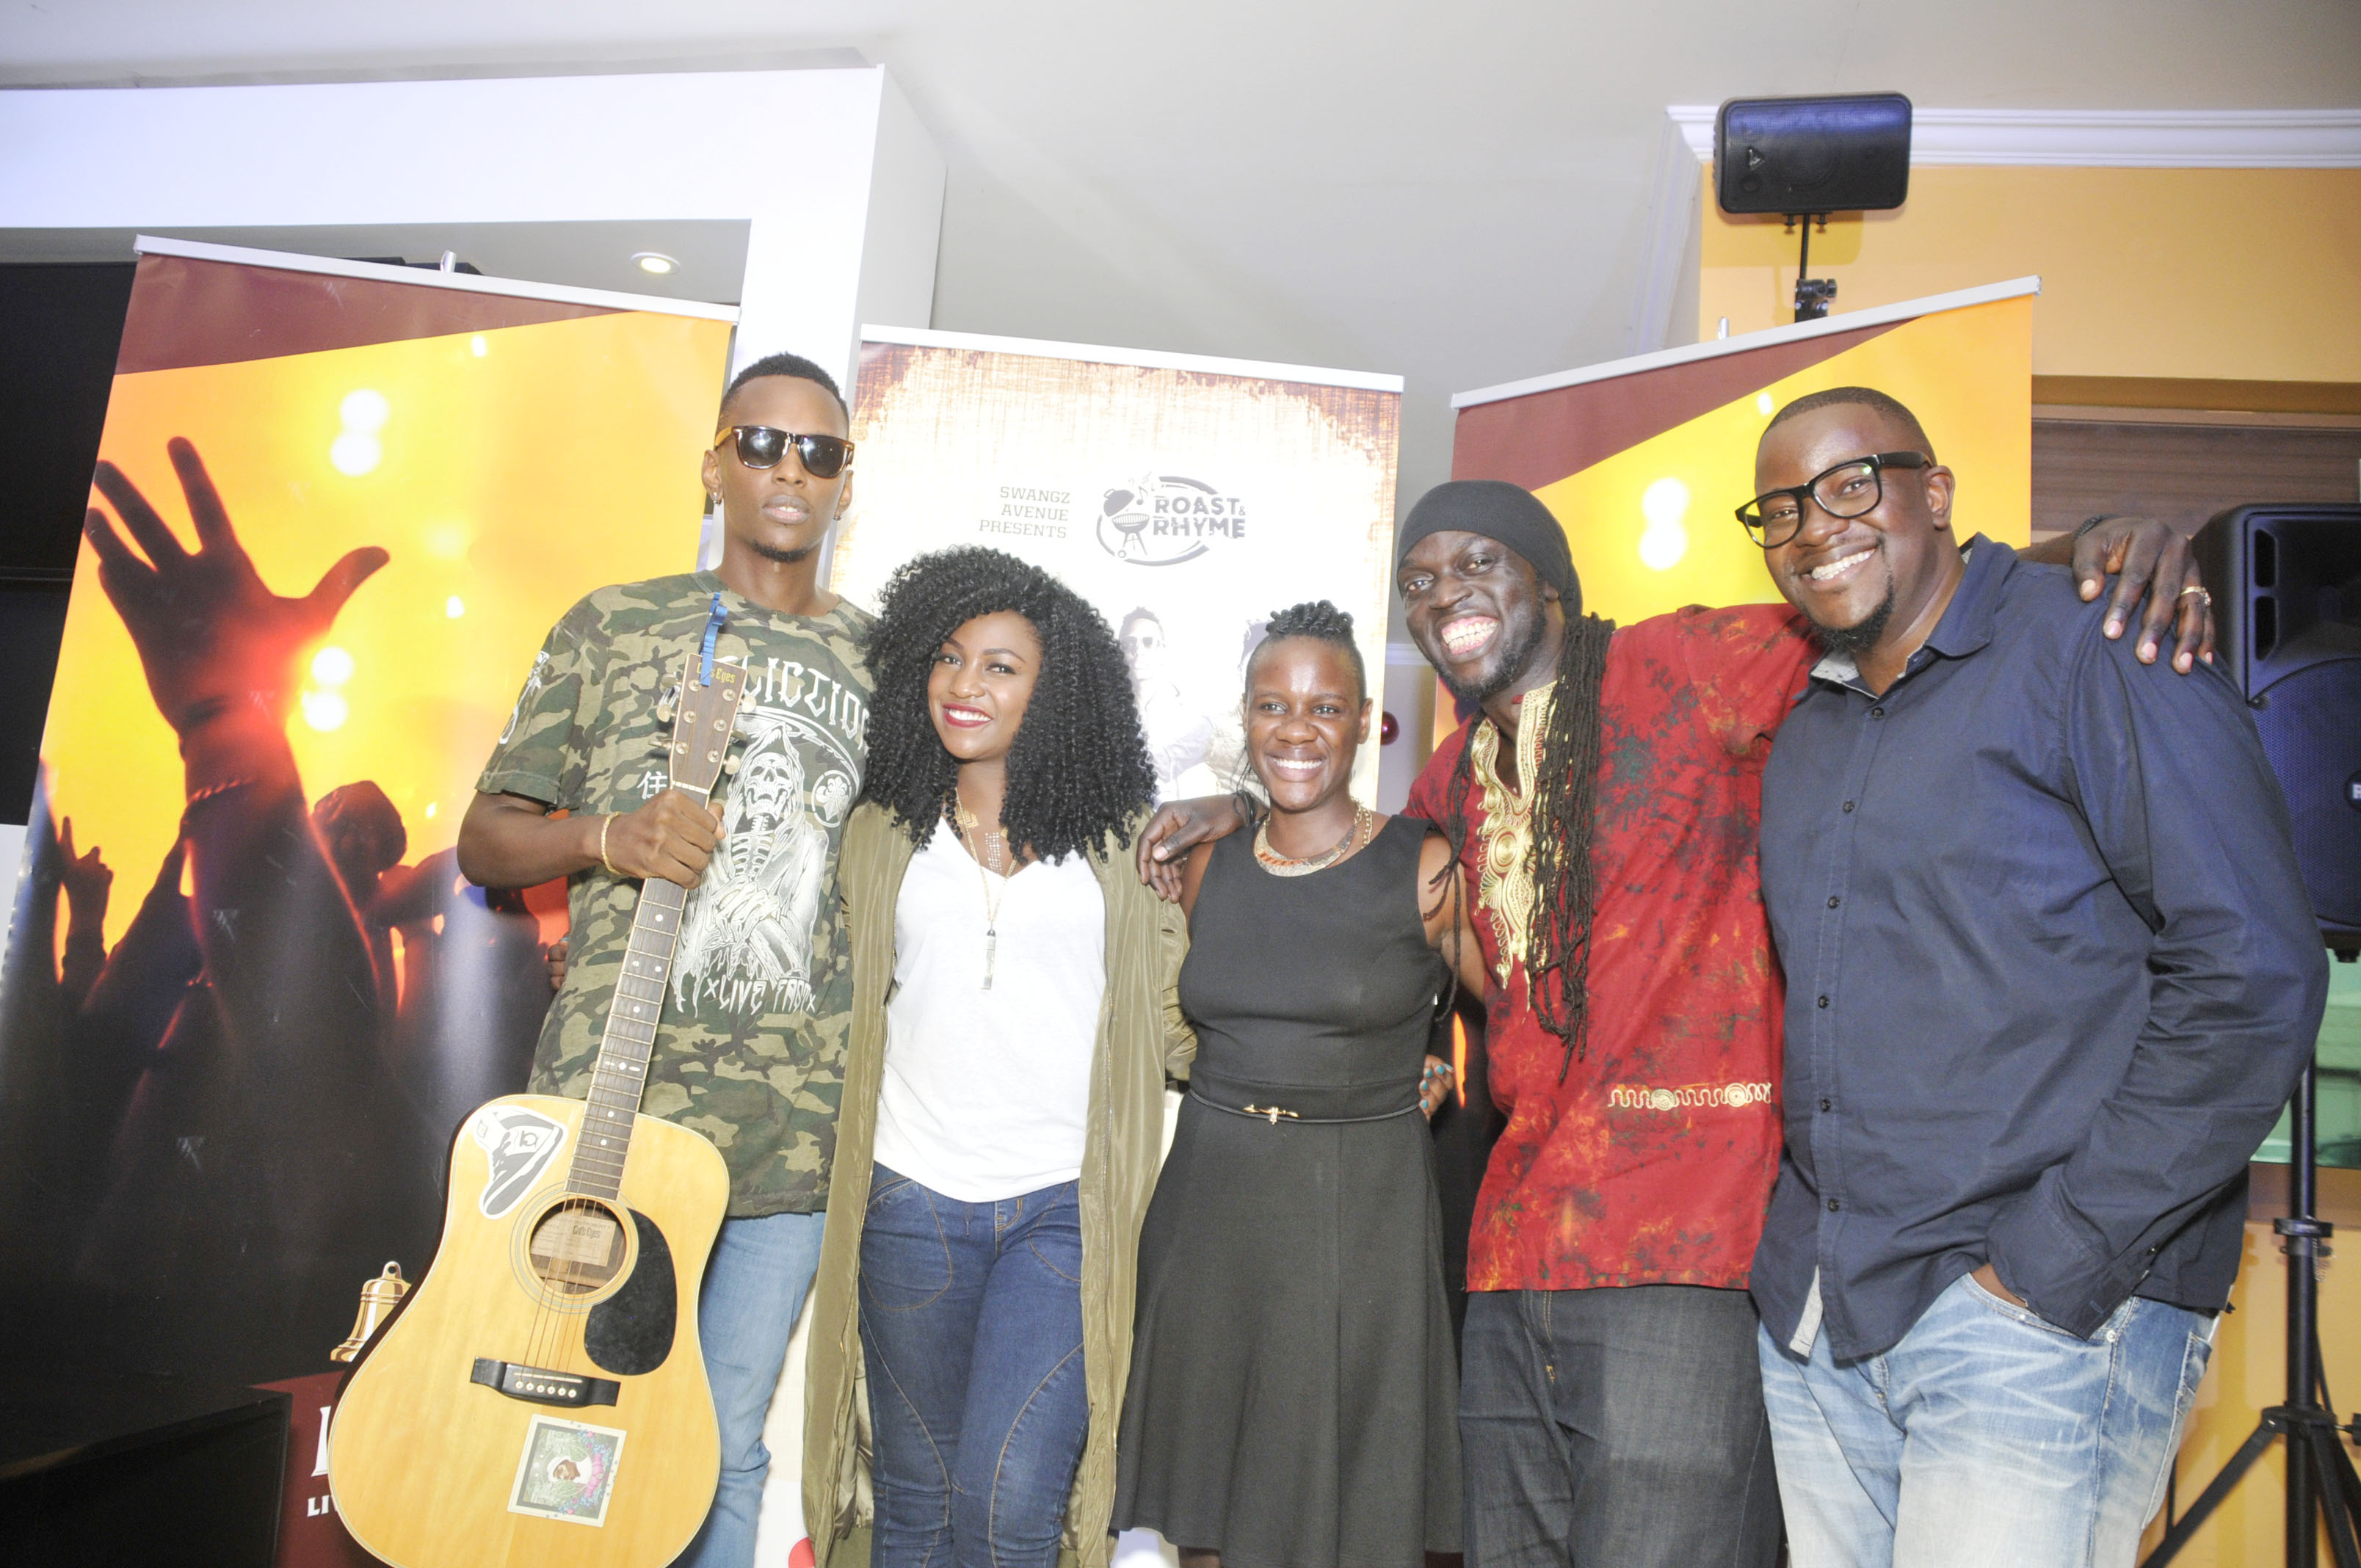 bell-lager-brand-manager-maureen-rutabingwa-centre-swangz-avenues-benon-mugumbya-flanked-by-musicians-allan-tonix-irene-ntale-and-babaluku-the-musicians-will-be-performing-live-at-roast-and-rhy